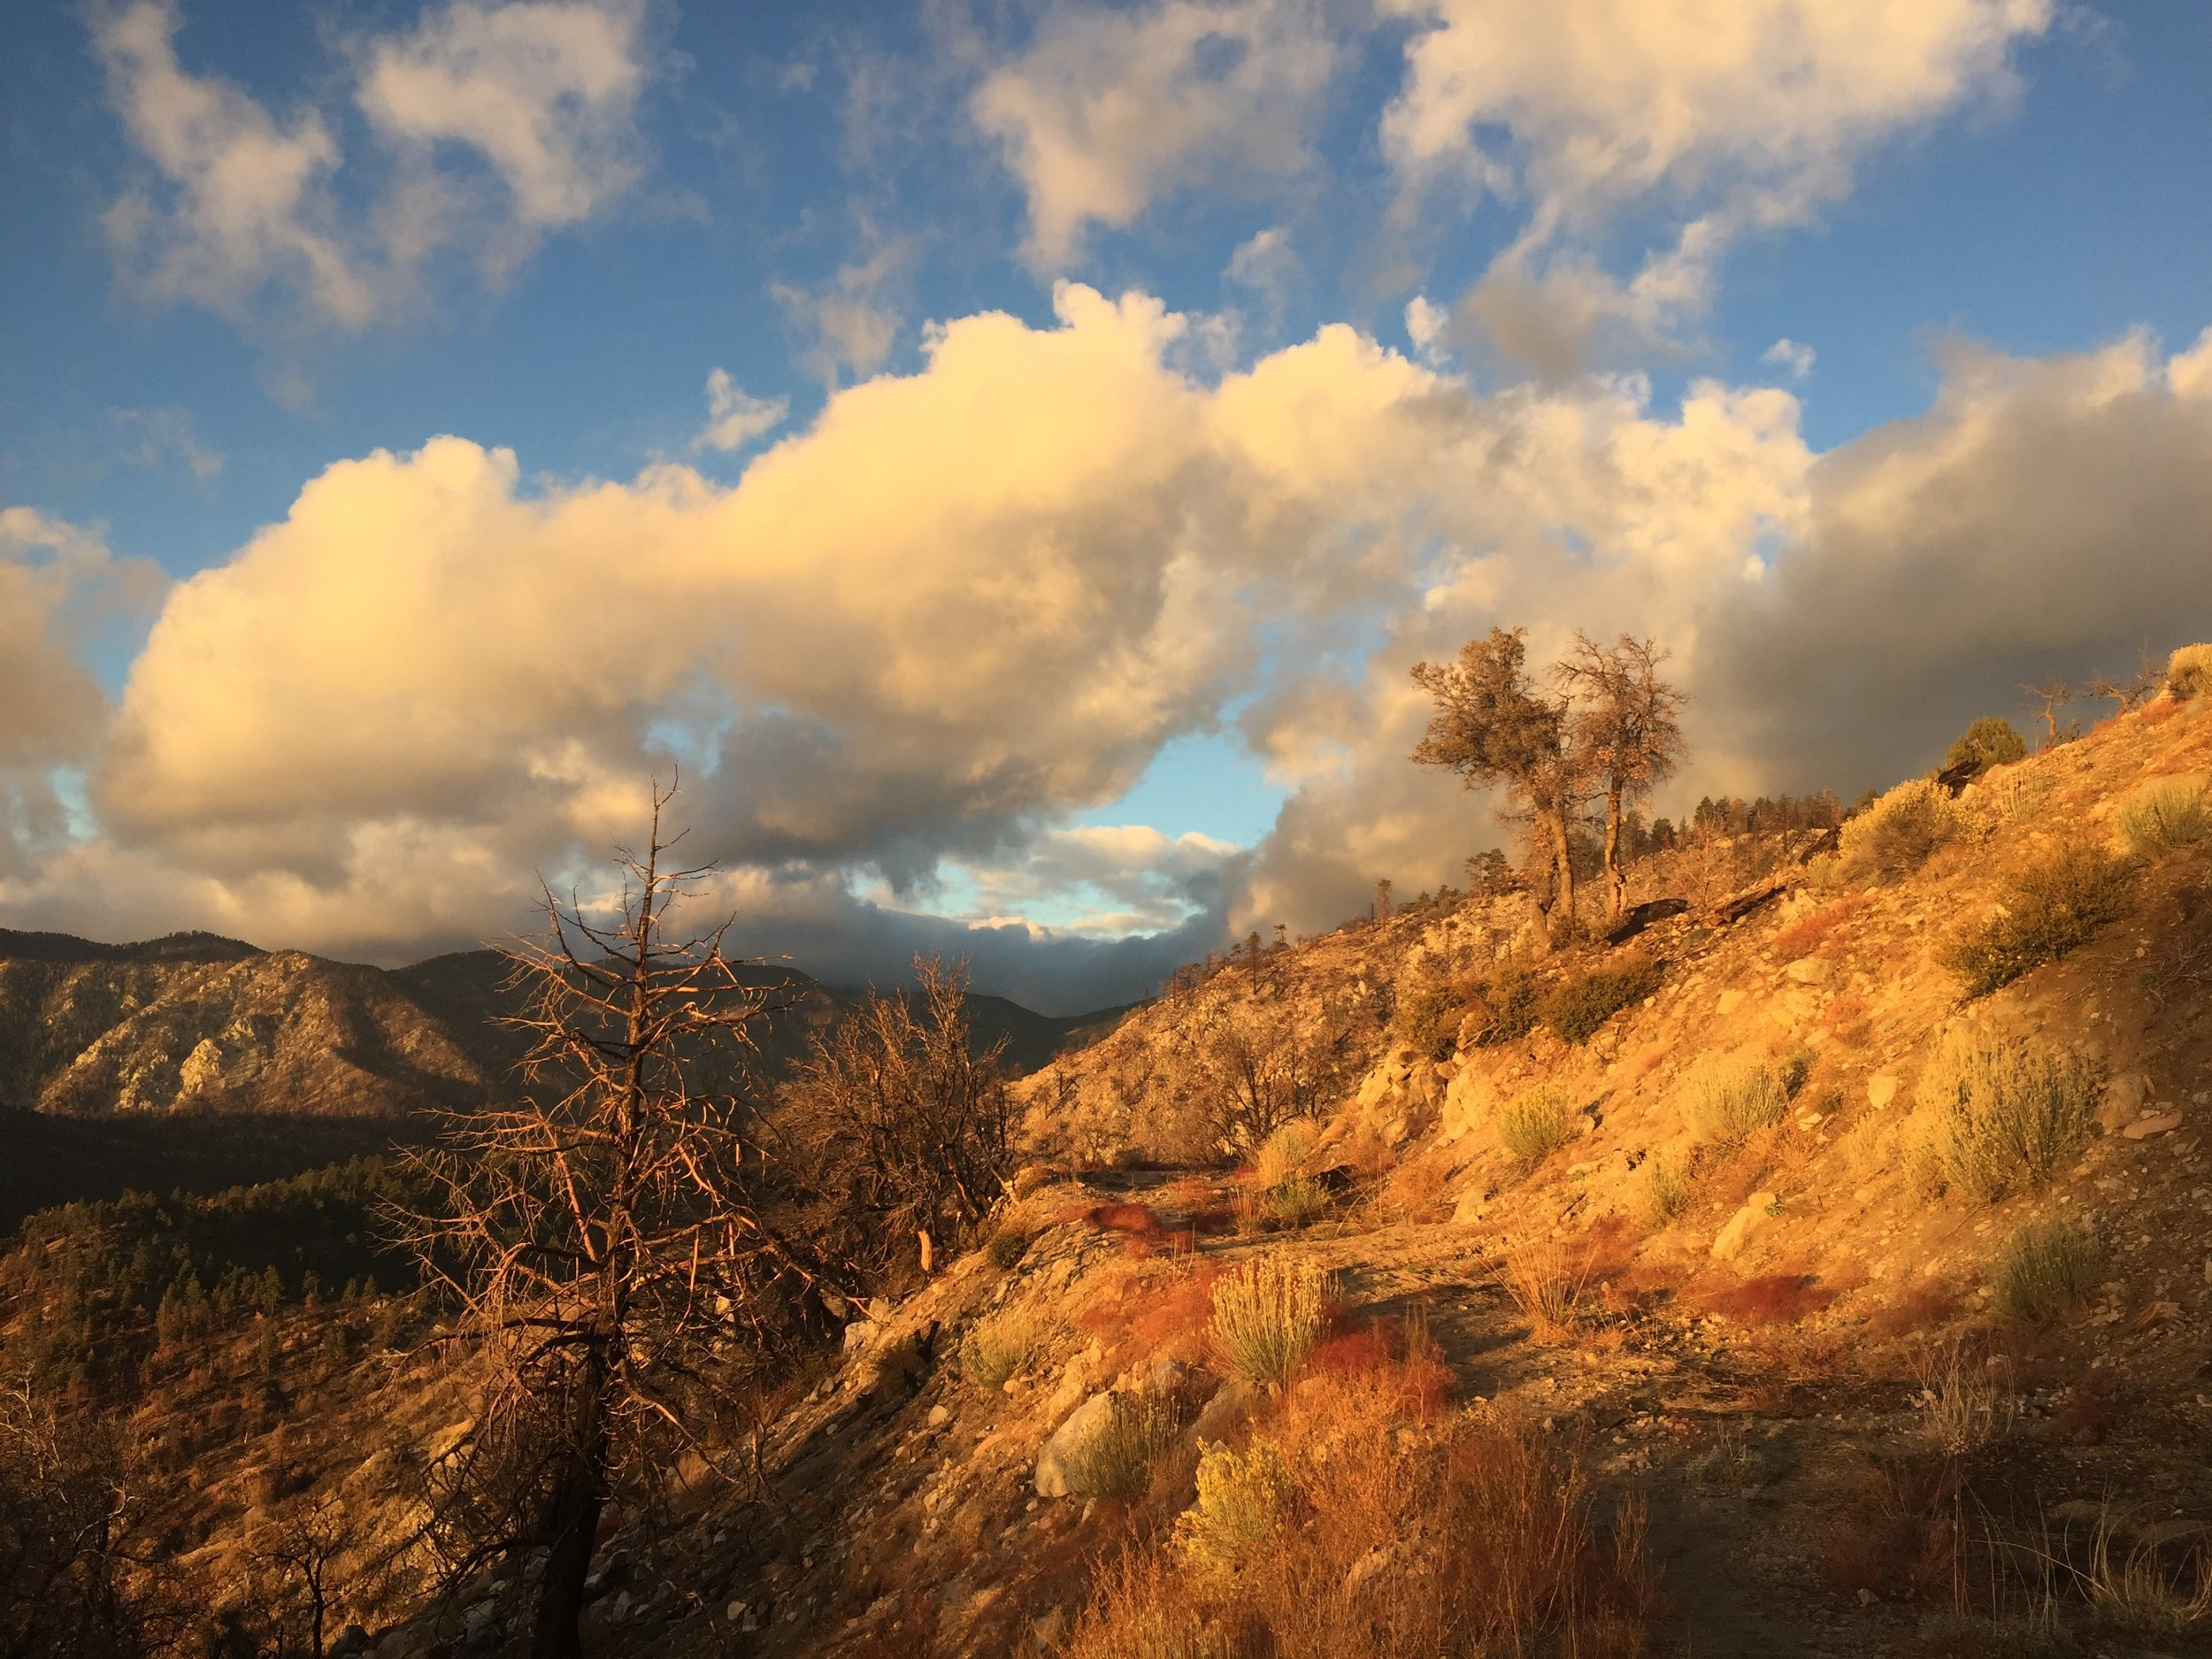 Morning golden hour in the higher elevations as we climb towards San Gorgonio